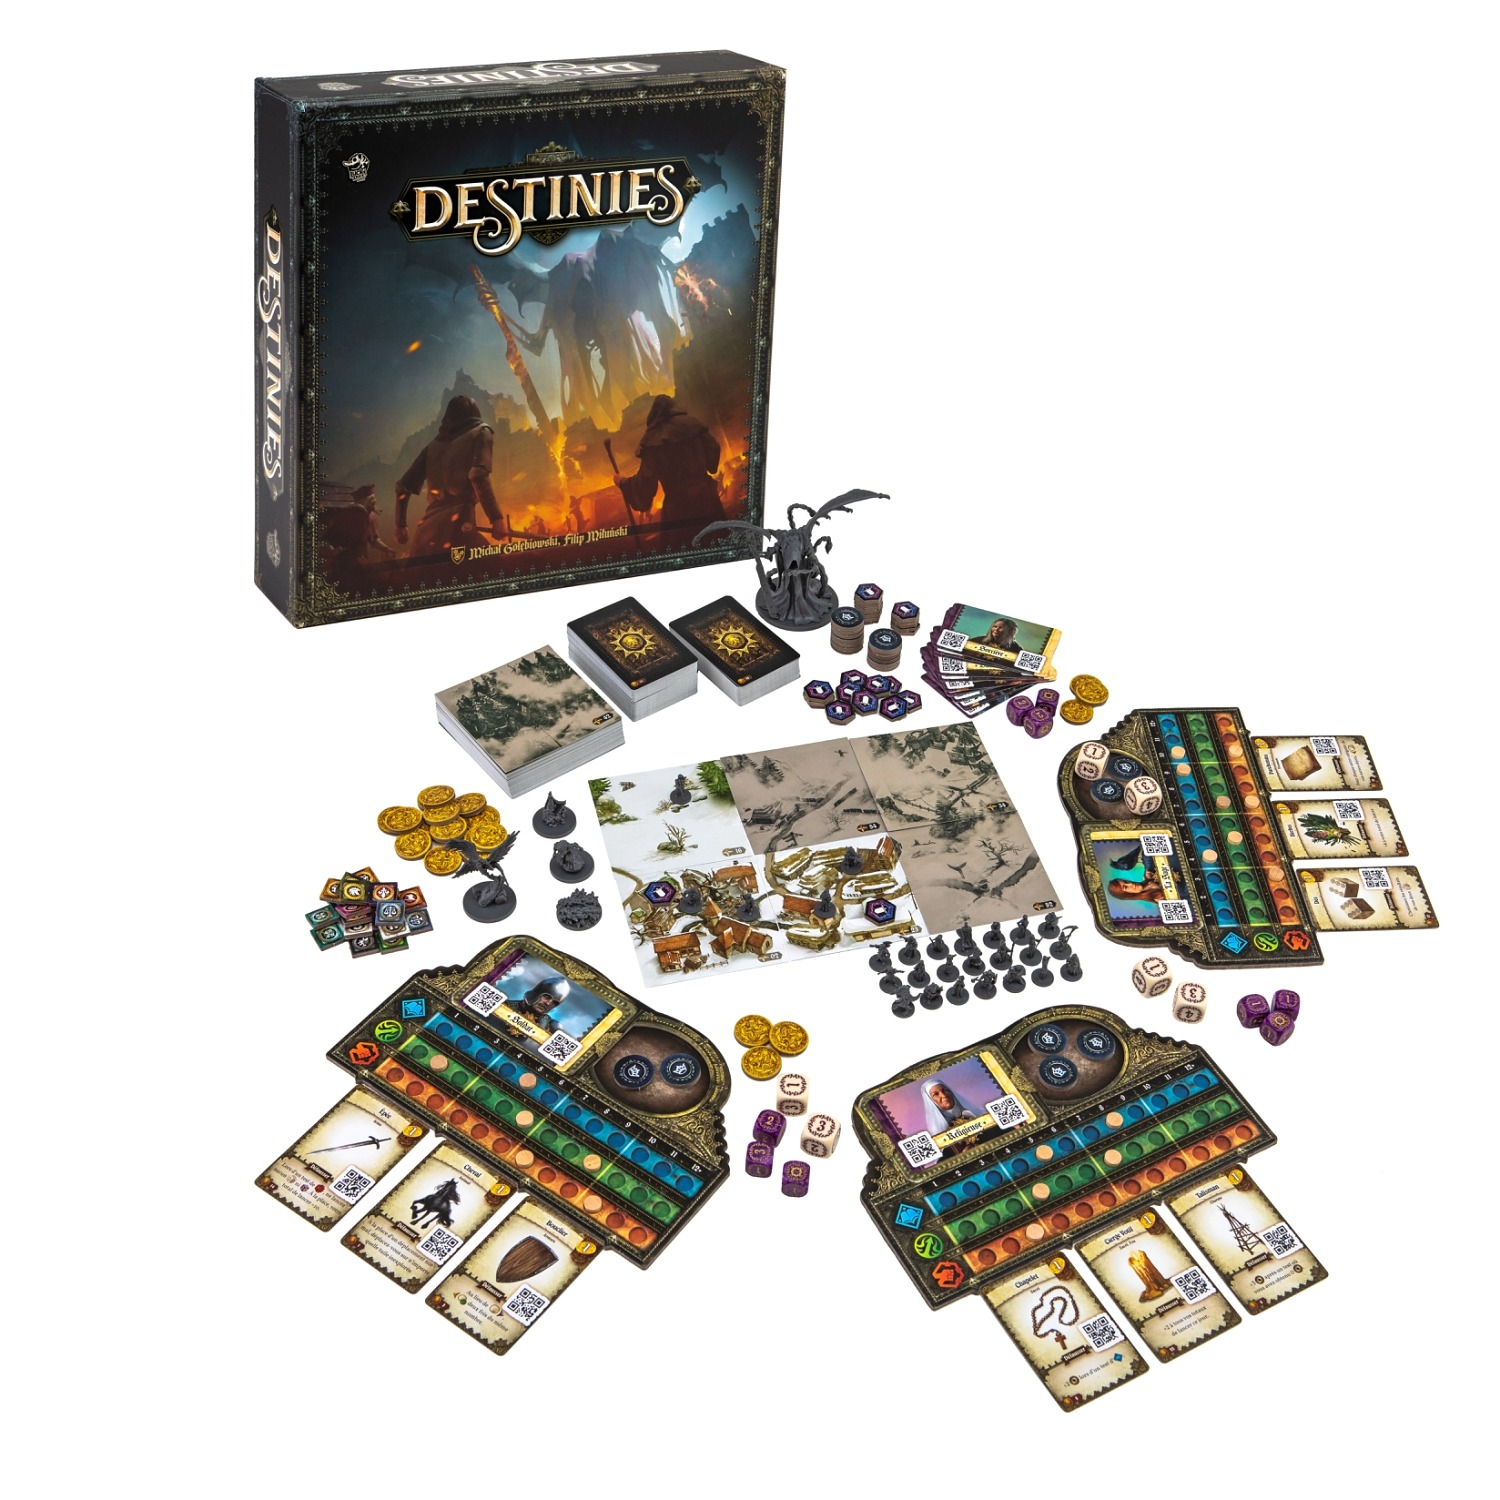 destinies lucky duck games boardgame